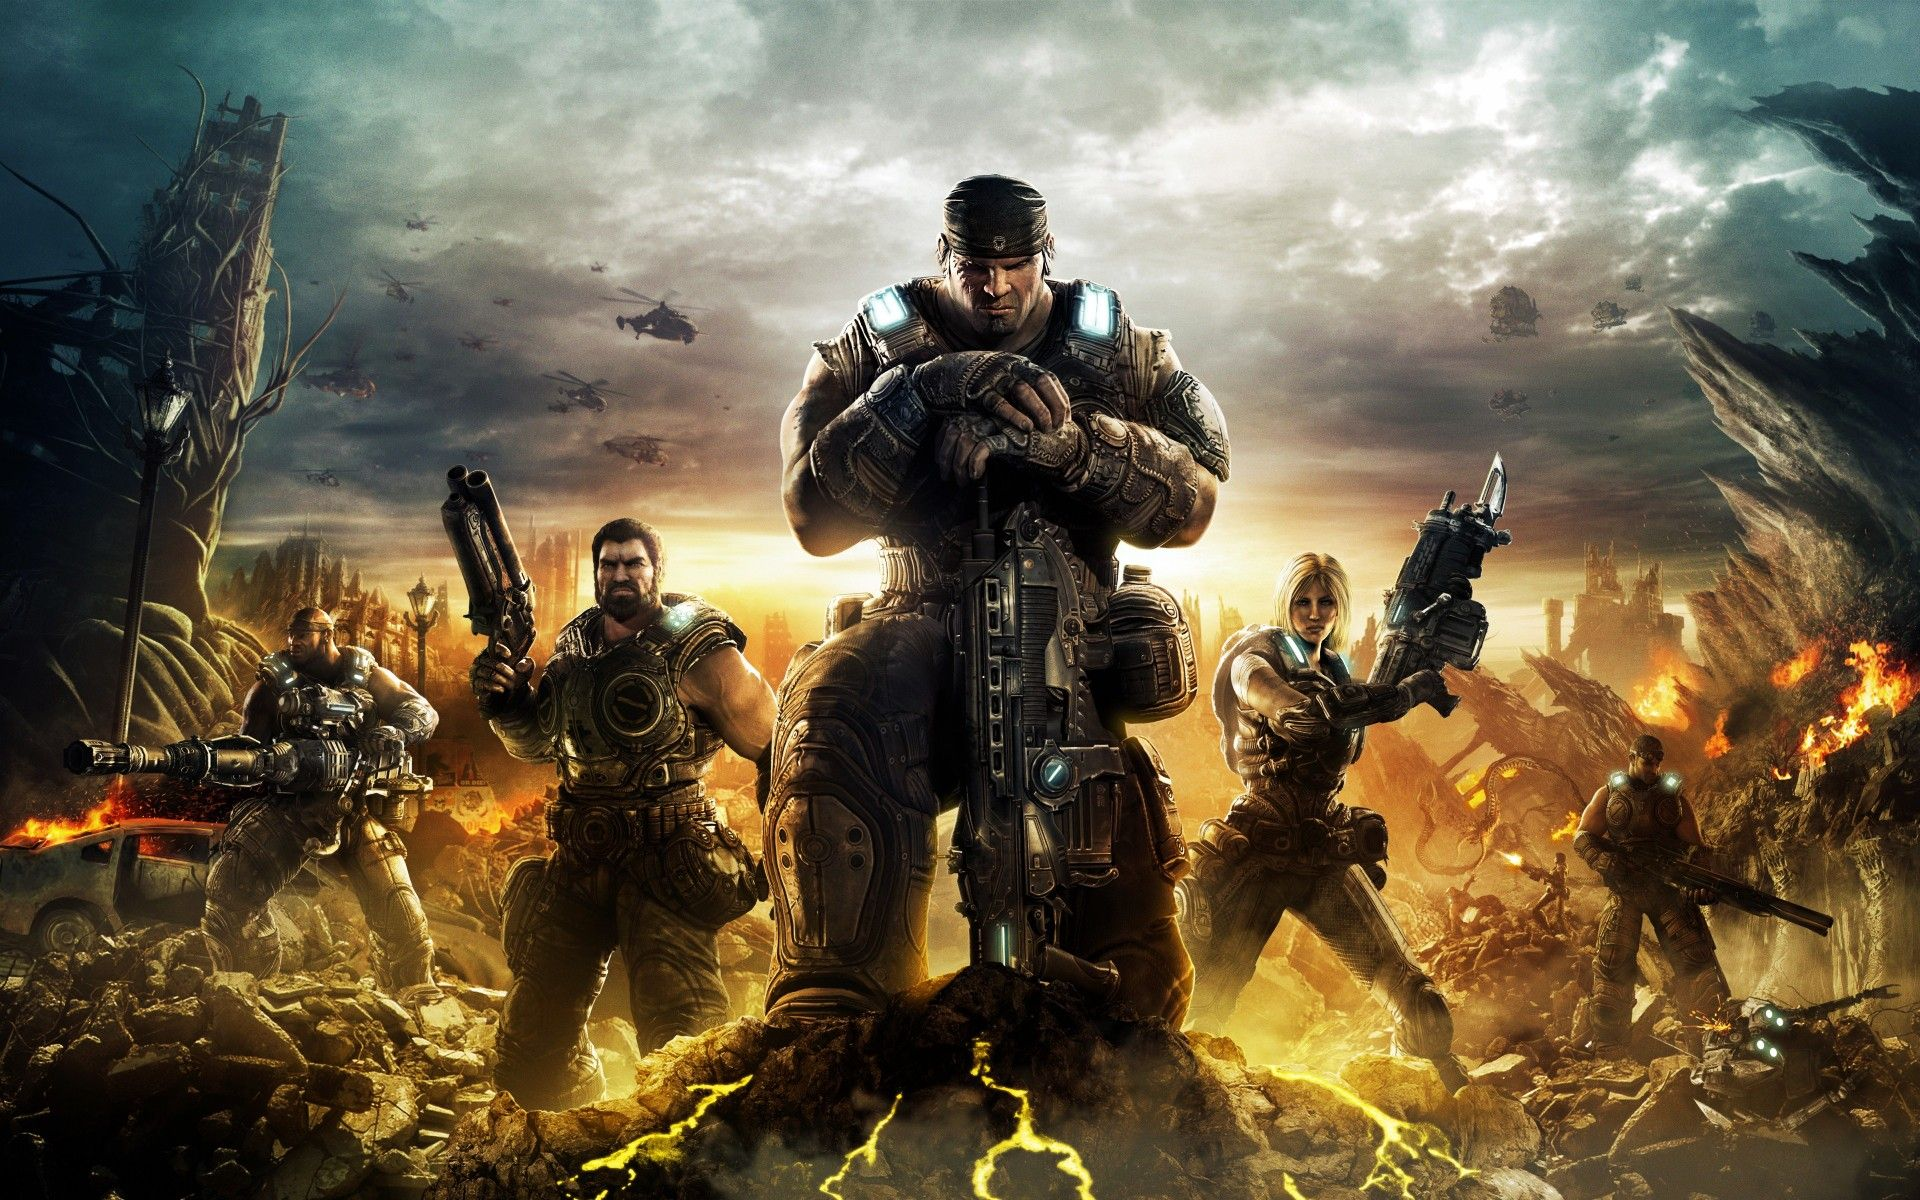 Gears of War movie is still go, gets Avatar screenwriter